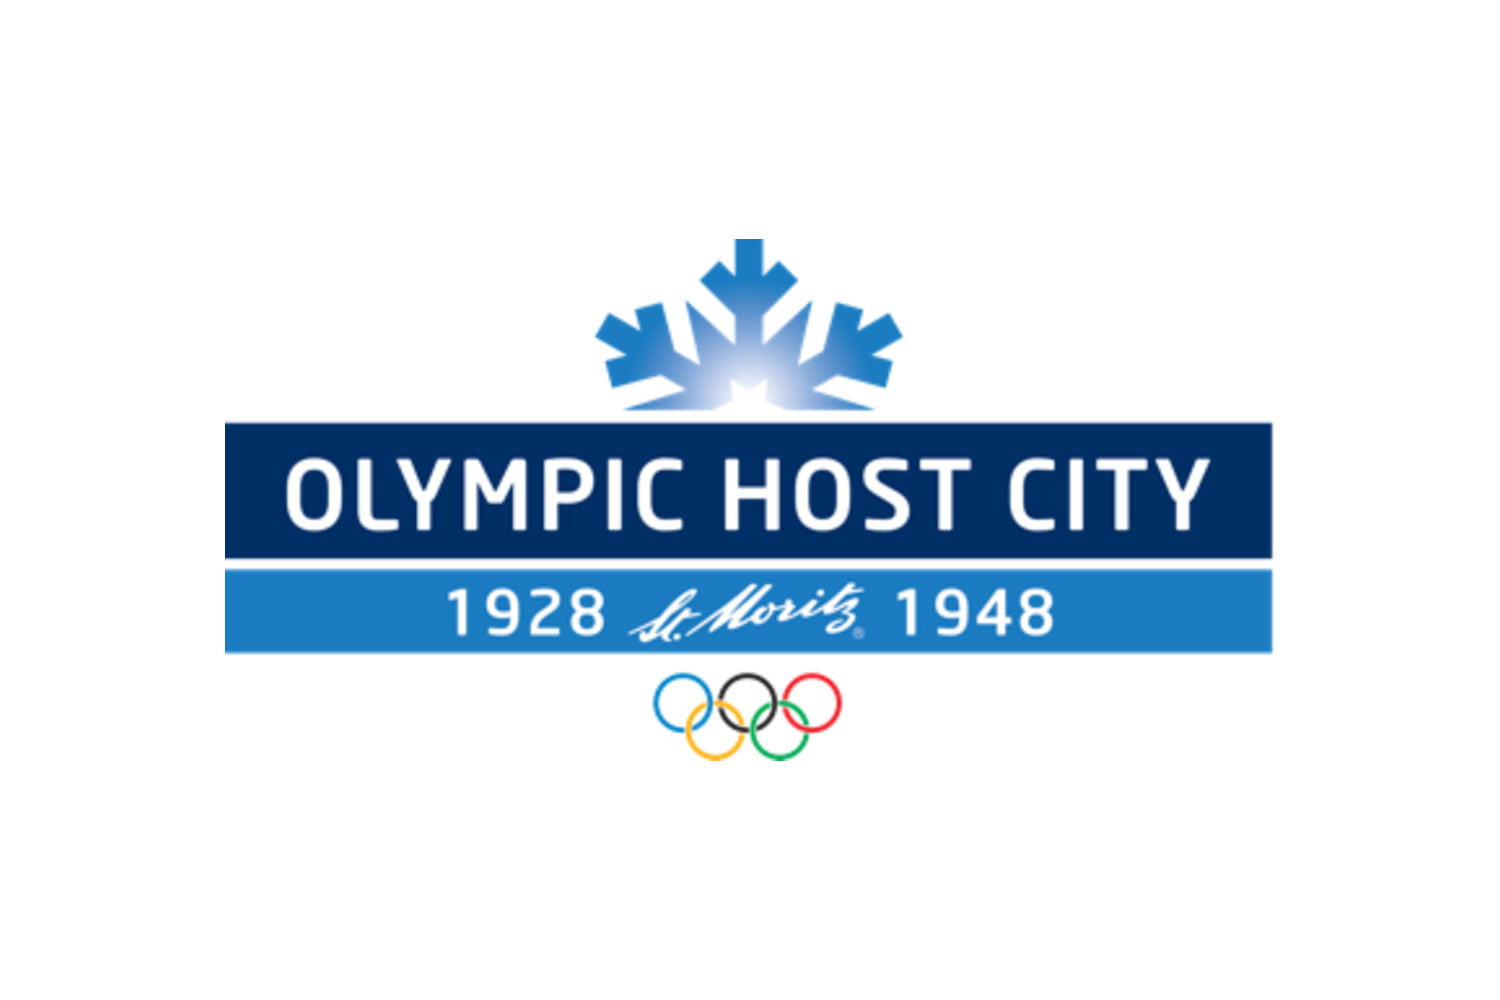 Olympic Host City